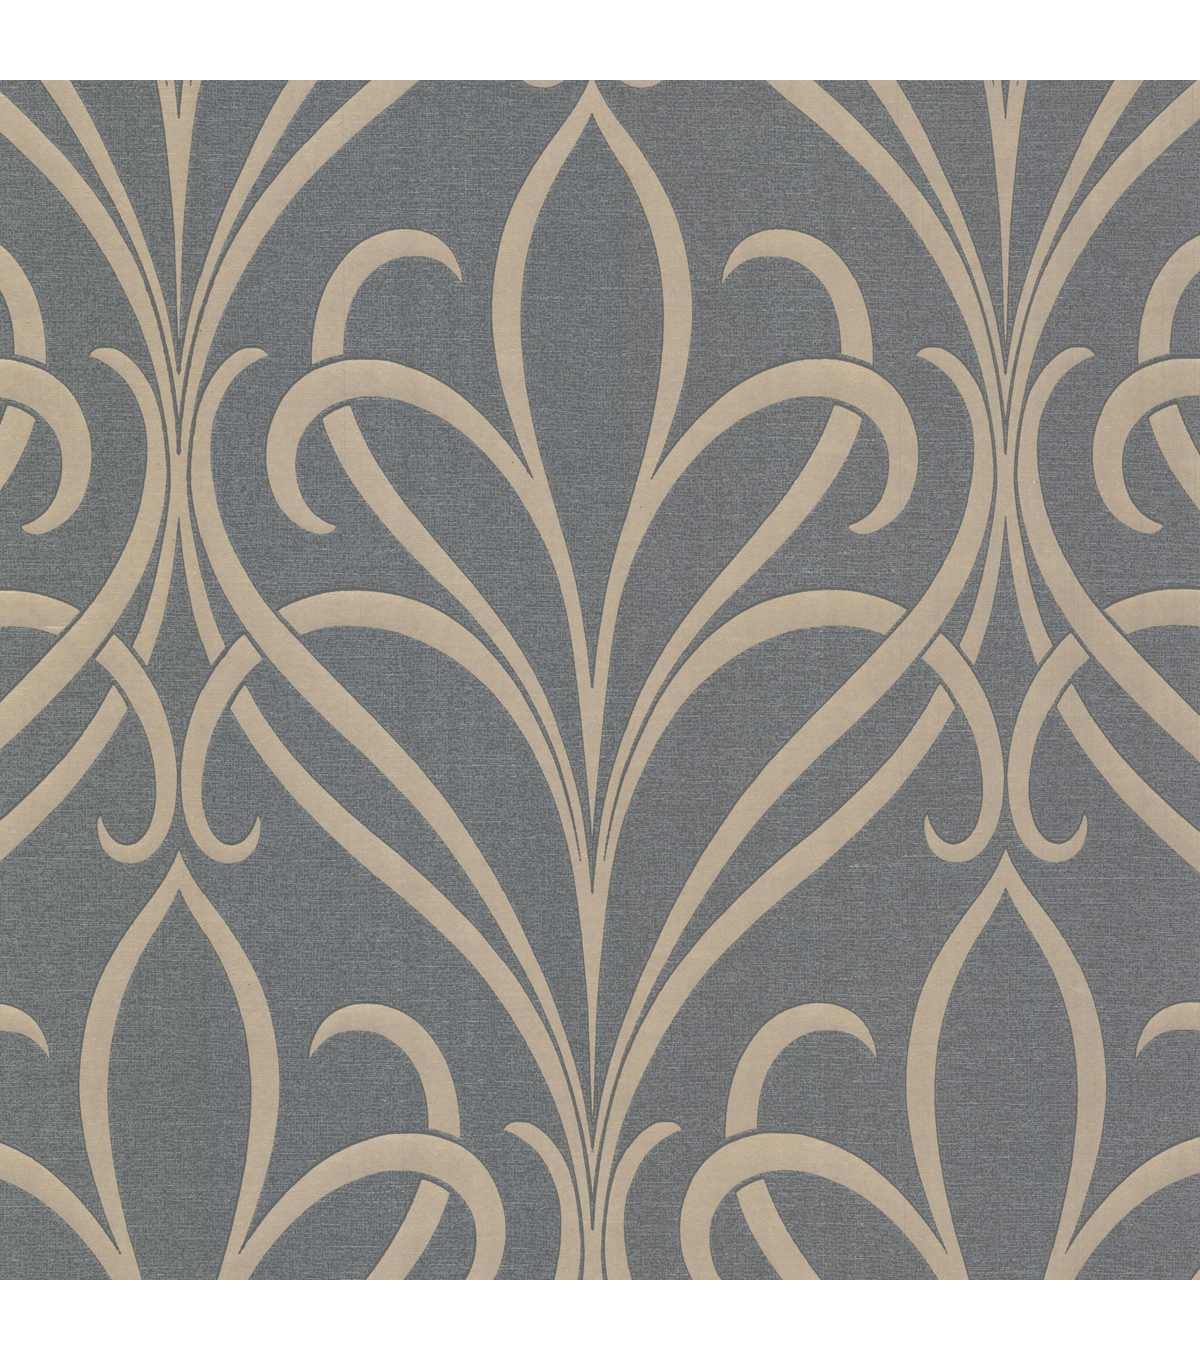 Lalique Silver Nouveau Damask Wallpaper Sample